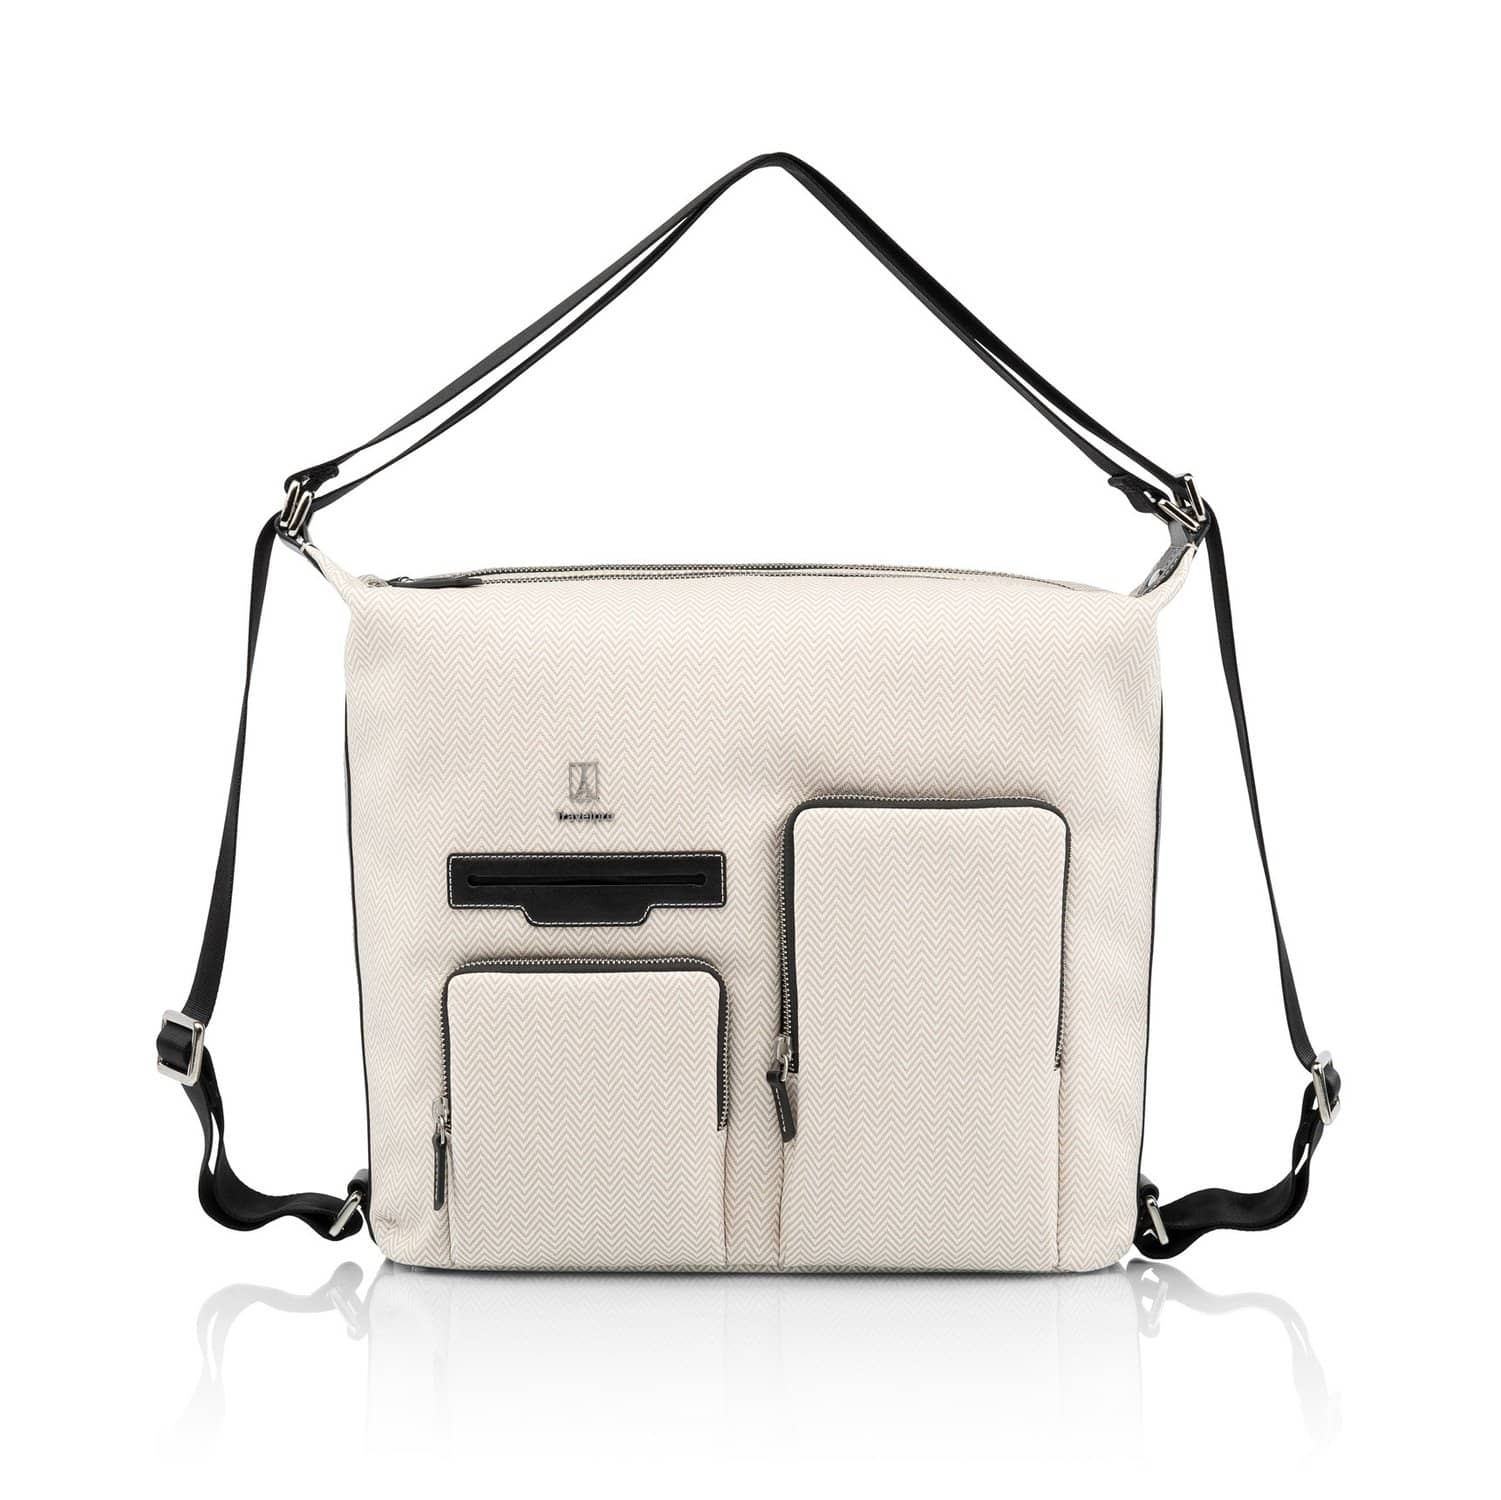 Travelpro Travelpro X Travel + Leisure Convertible Backpack - White Sand